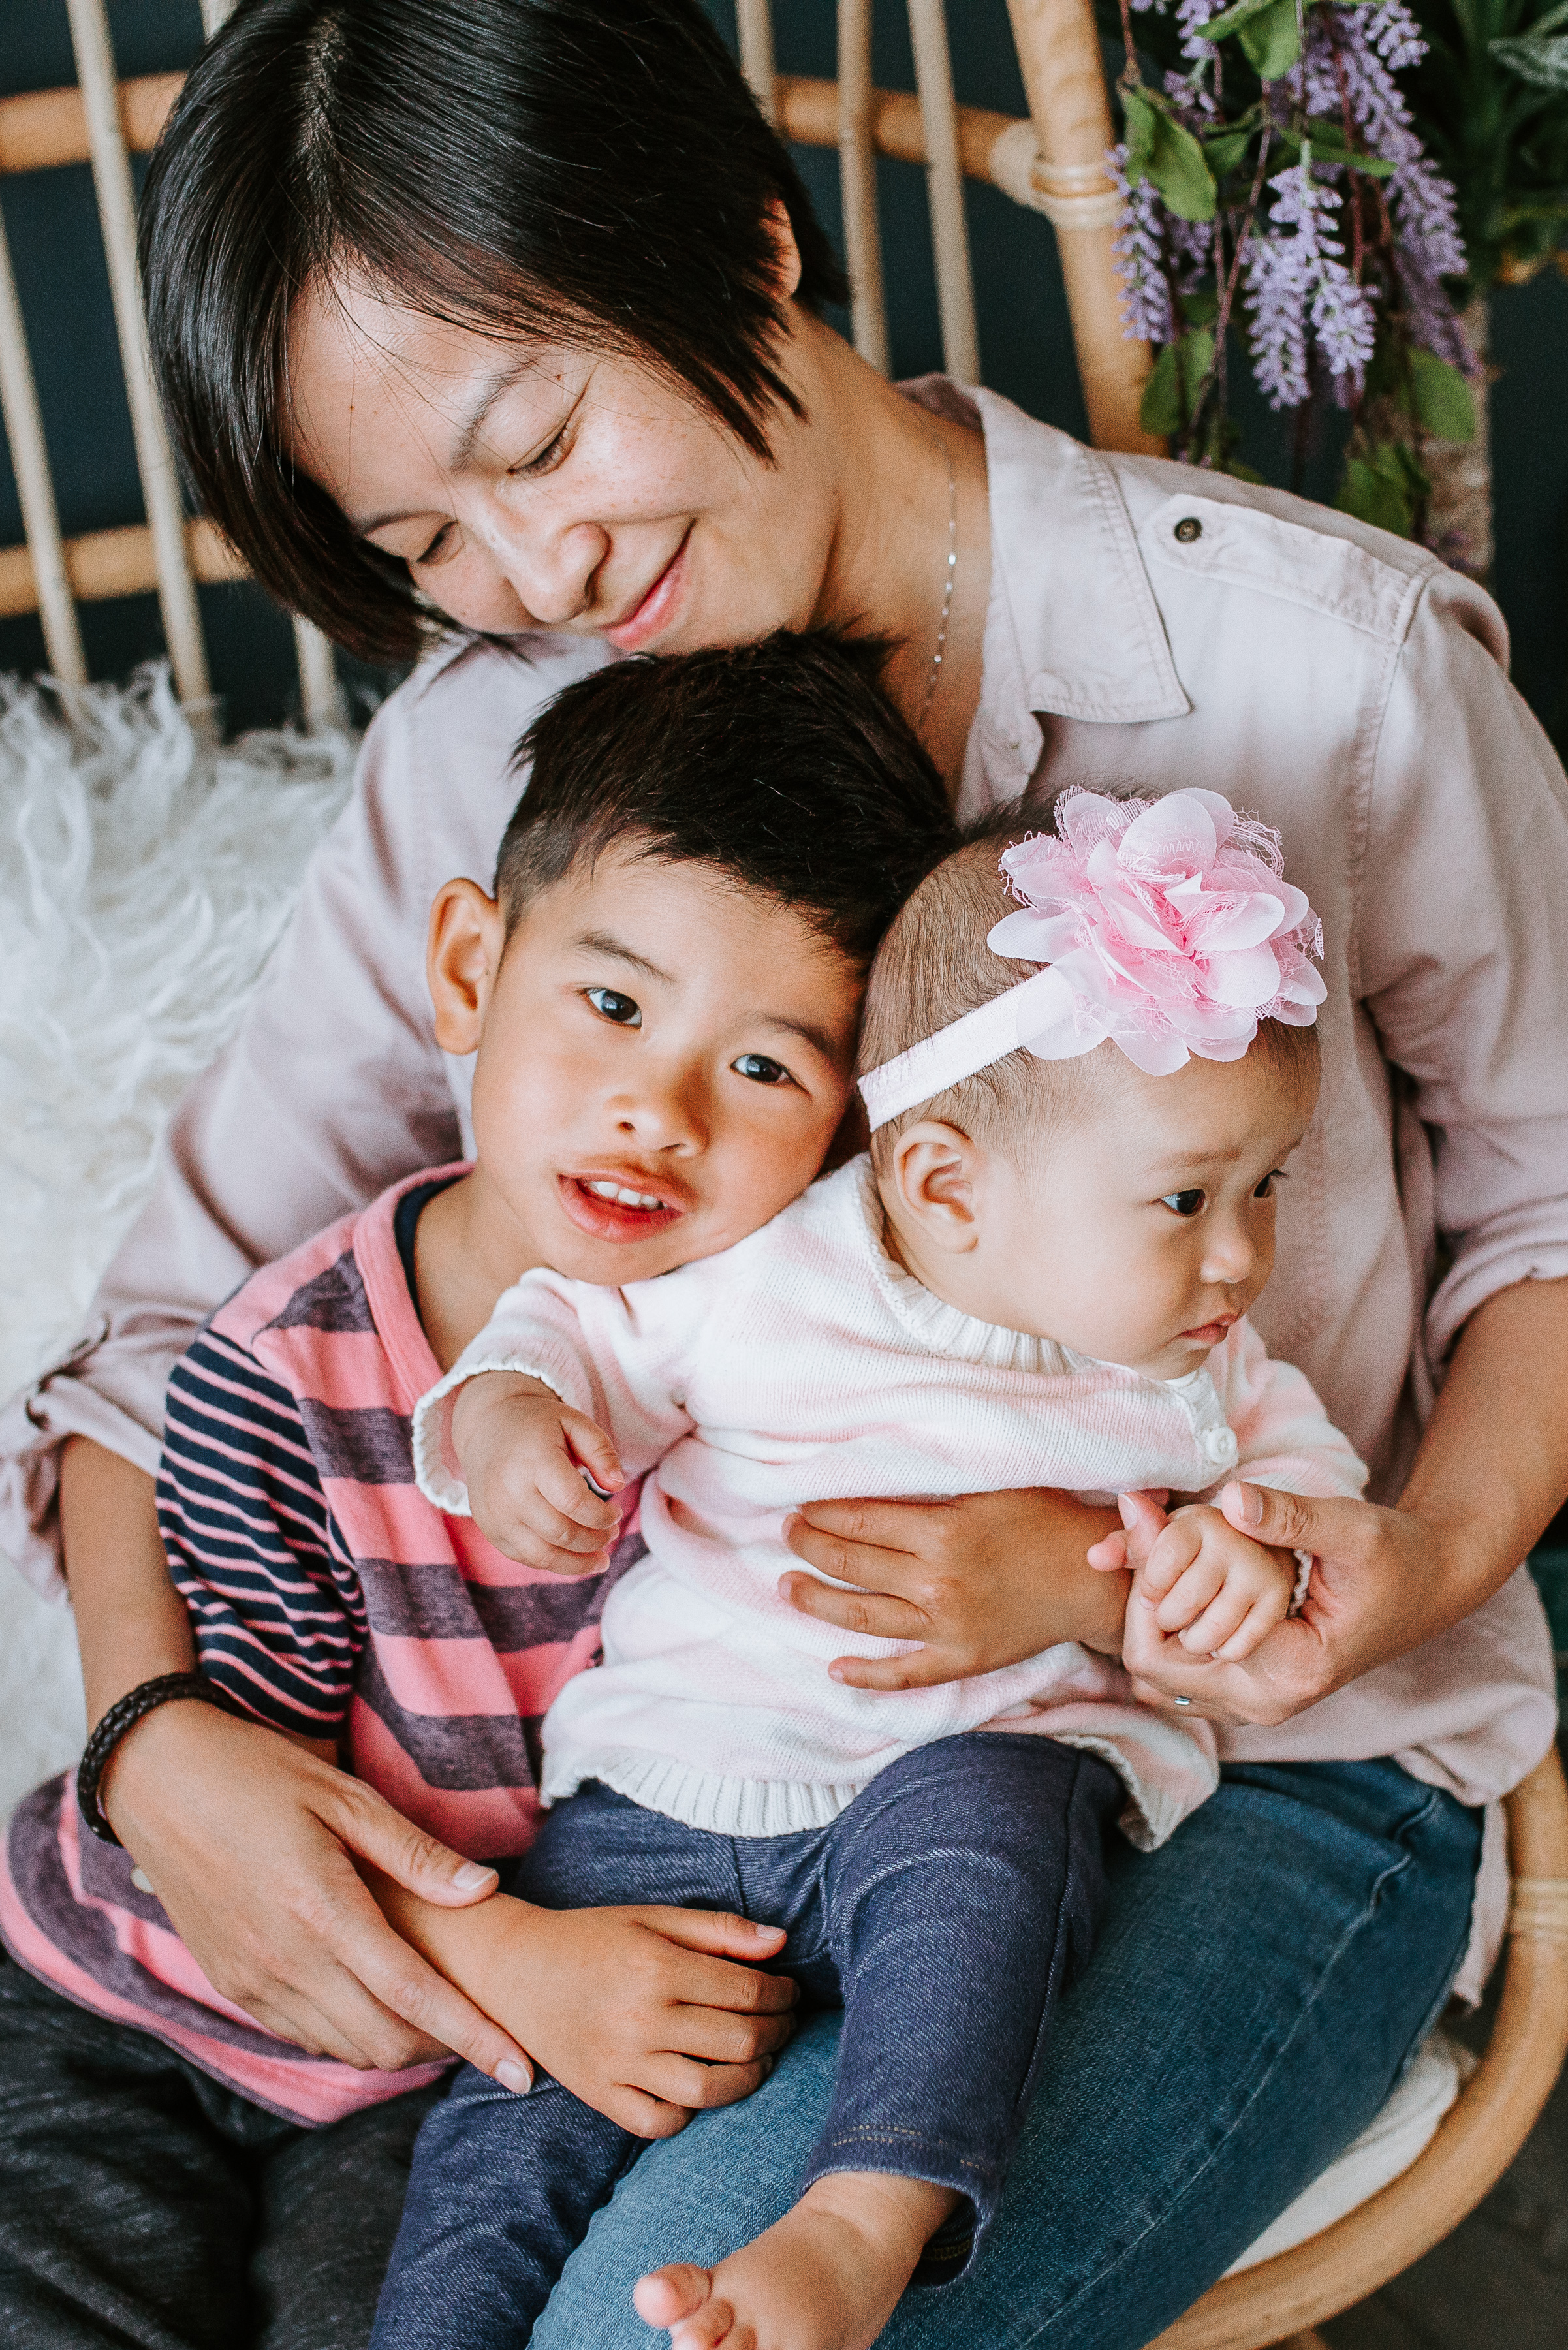 Phoebe (founder of Cantonese Fun Playgroup) with her two children